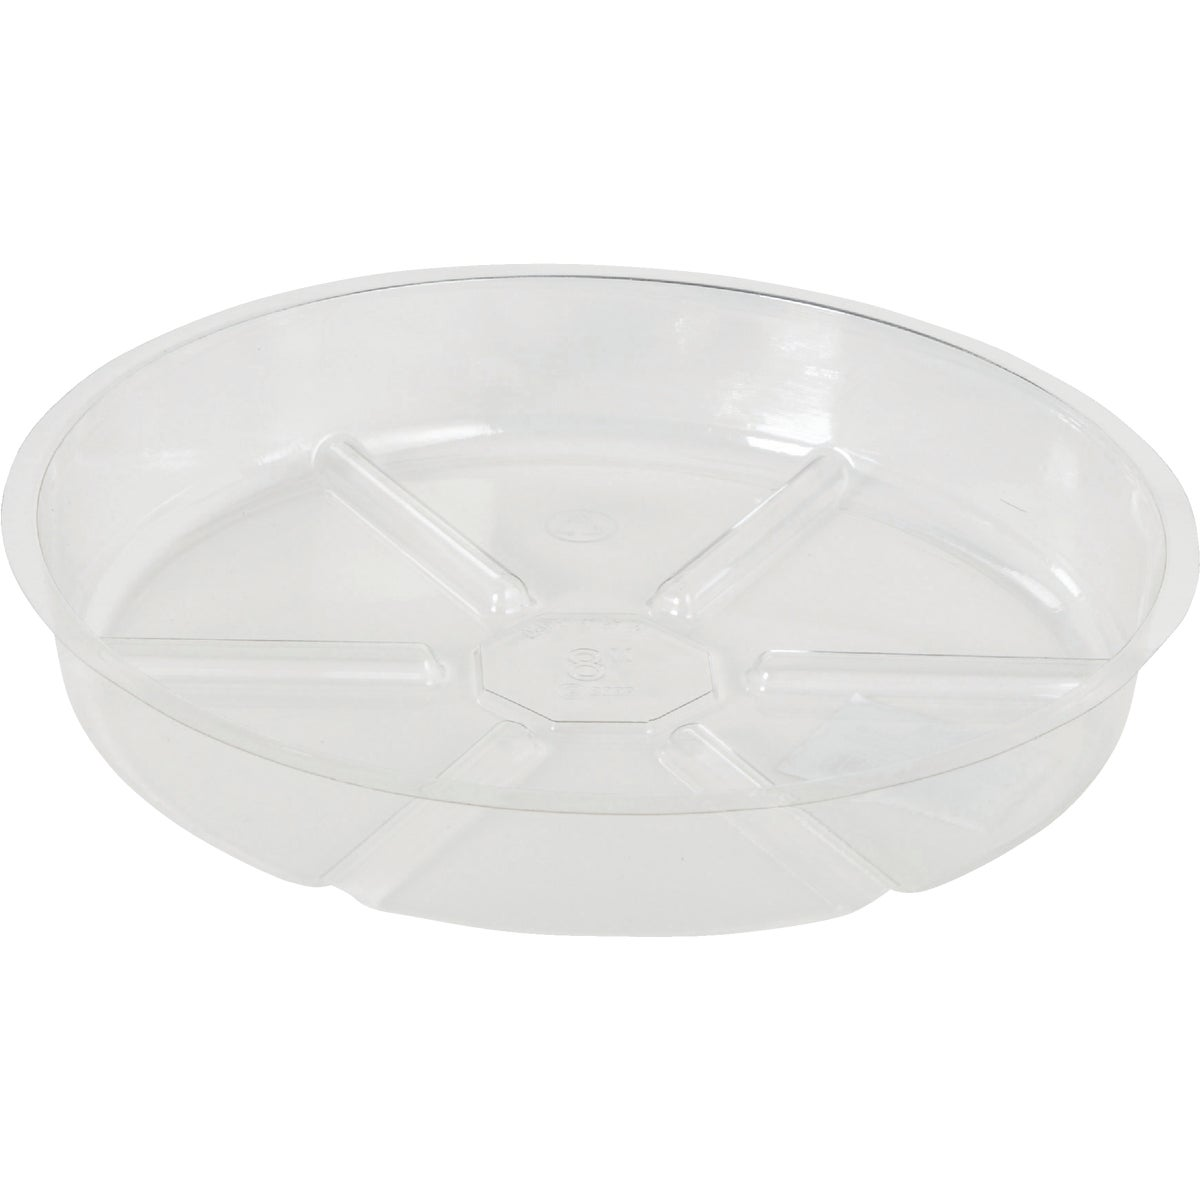 "8"" CLEAR VINYL SAUCER - VS8 by Woodstream Corp"